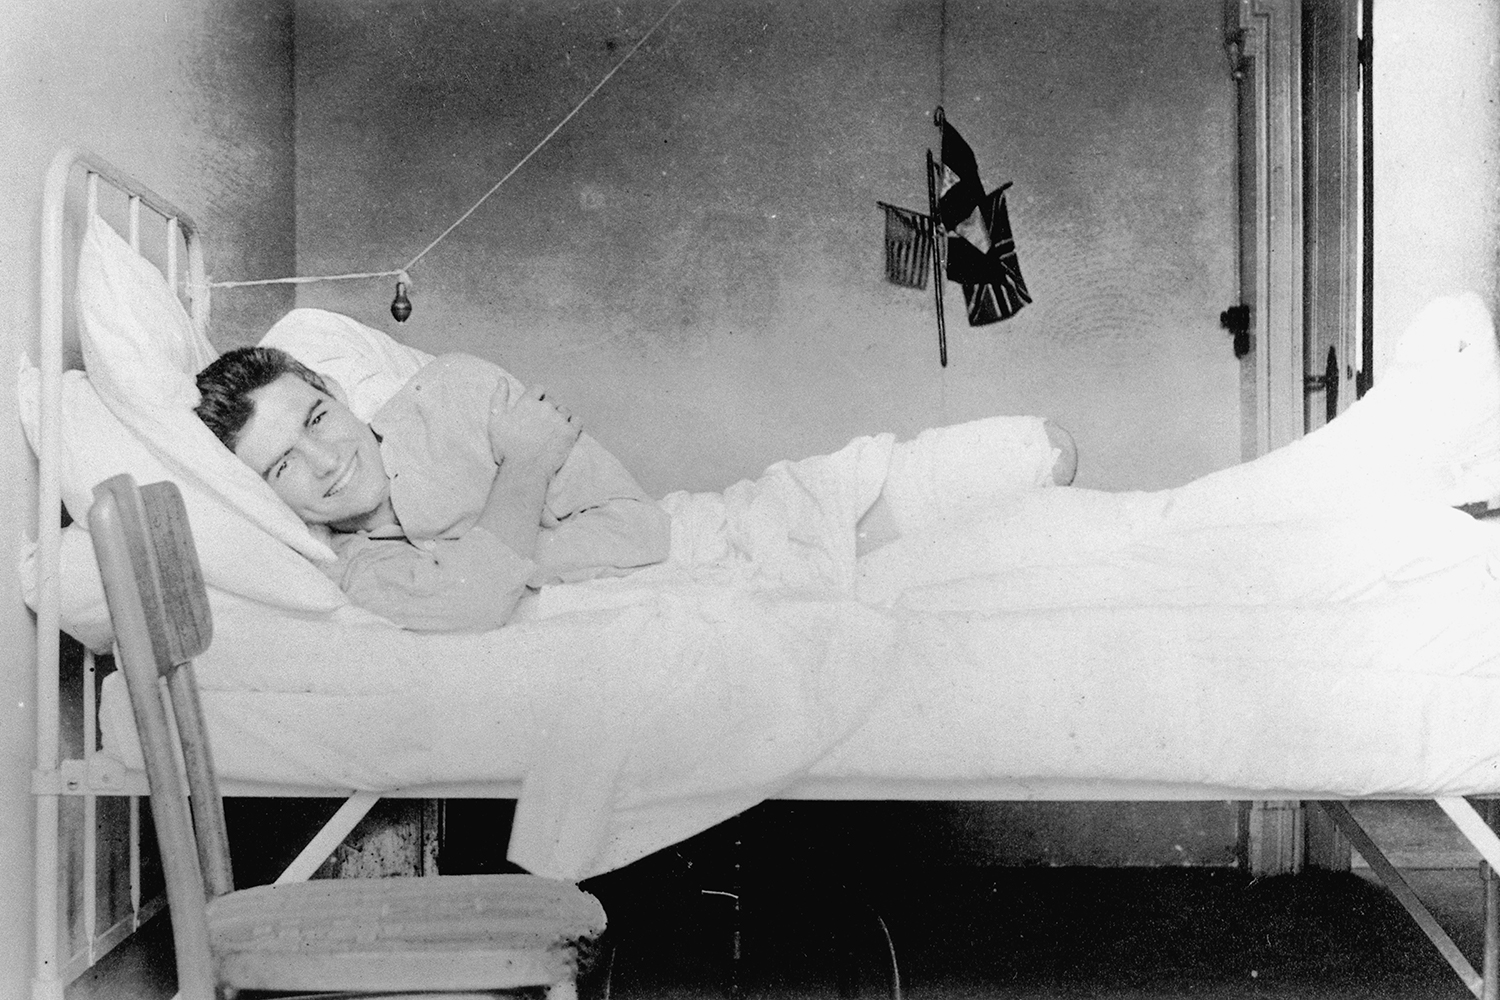 Ernest Hemingway recovering from injuries at the American Red Cross Hospital in Milan, Italy, 1918